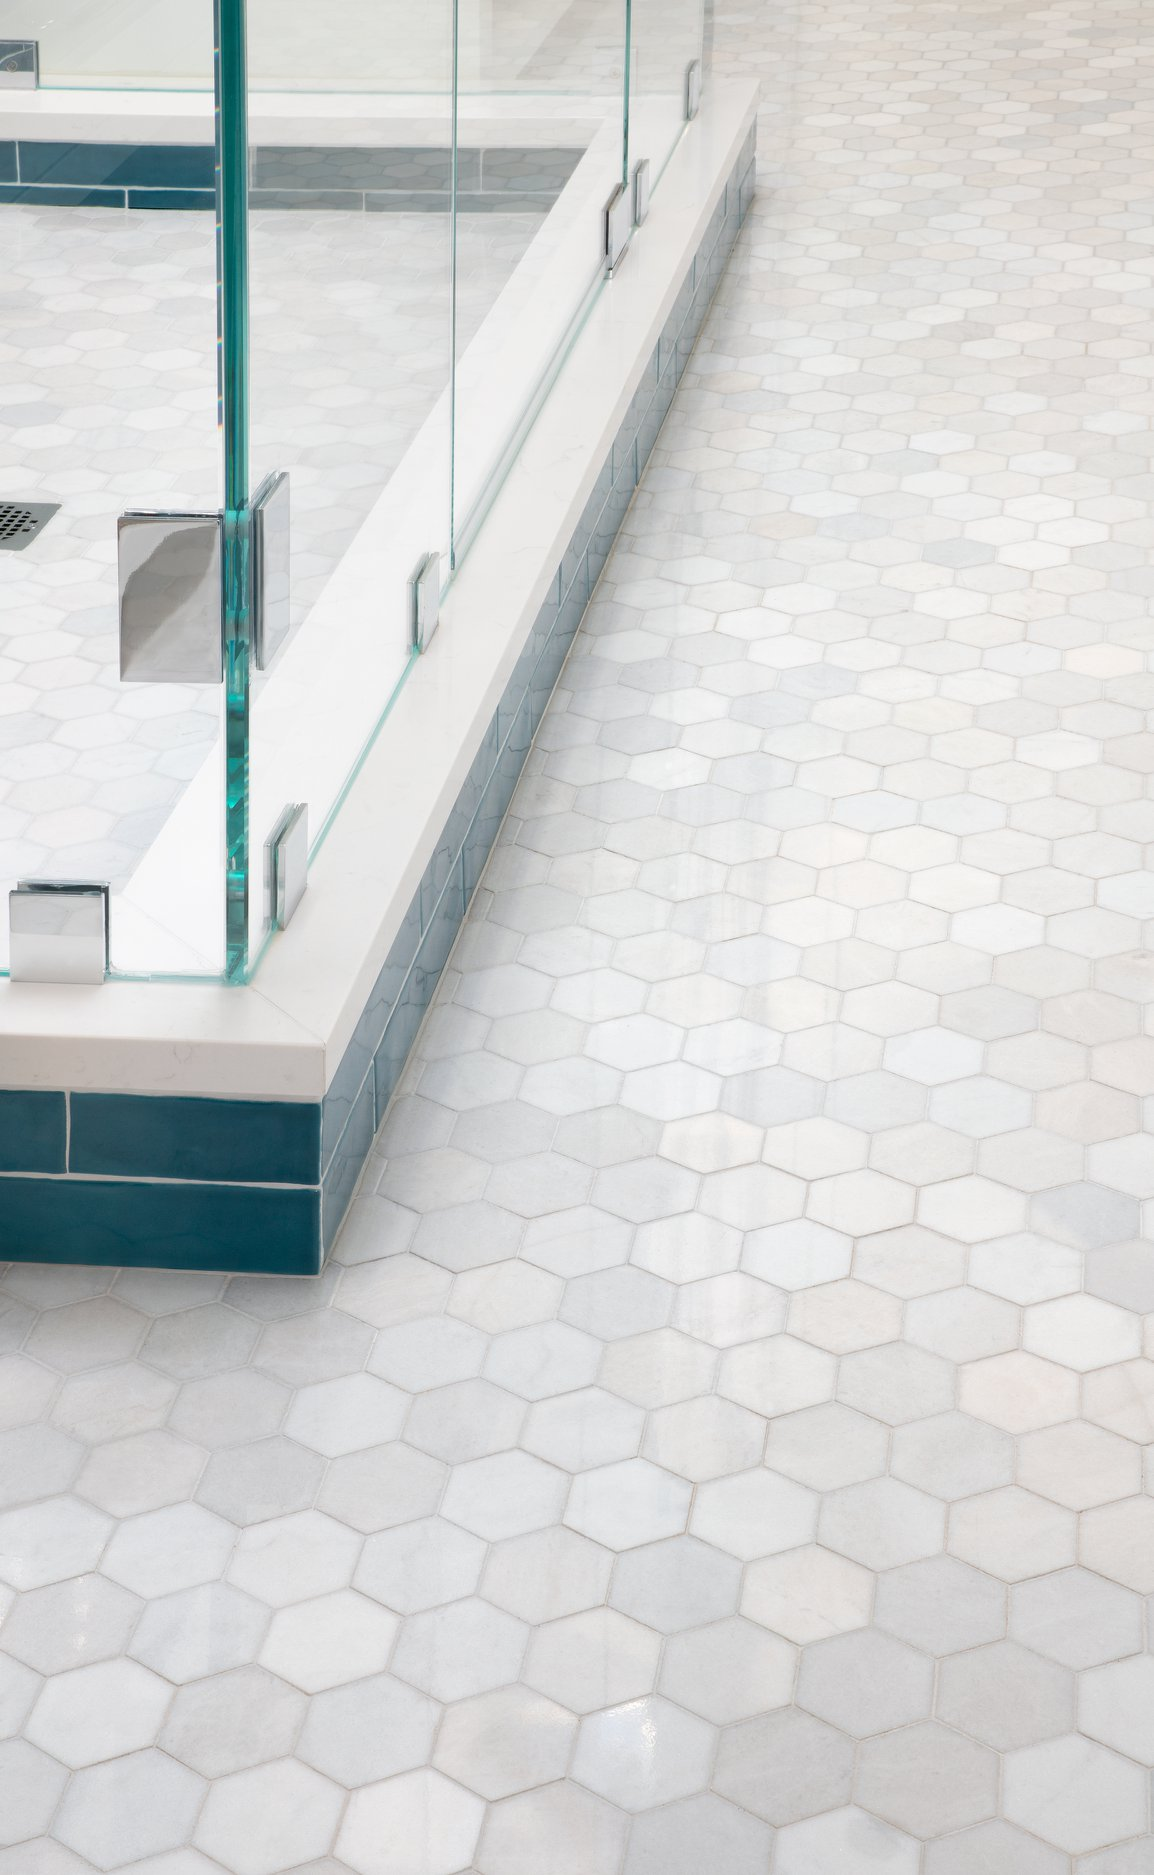 High-quality, exceptionally designed marble mosaics at a competitive price.